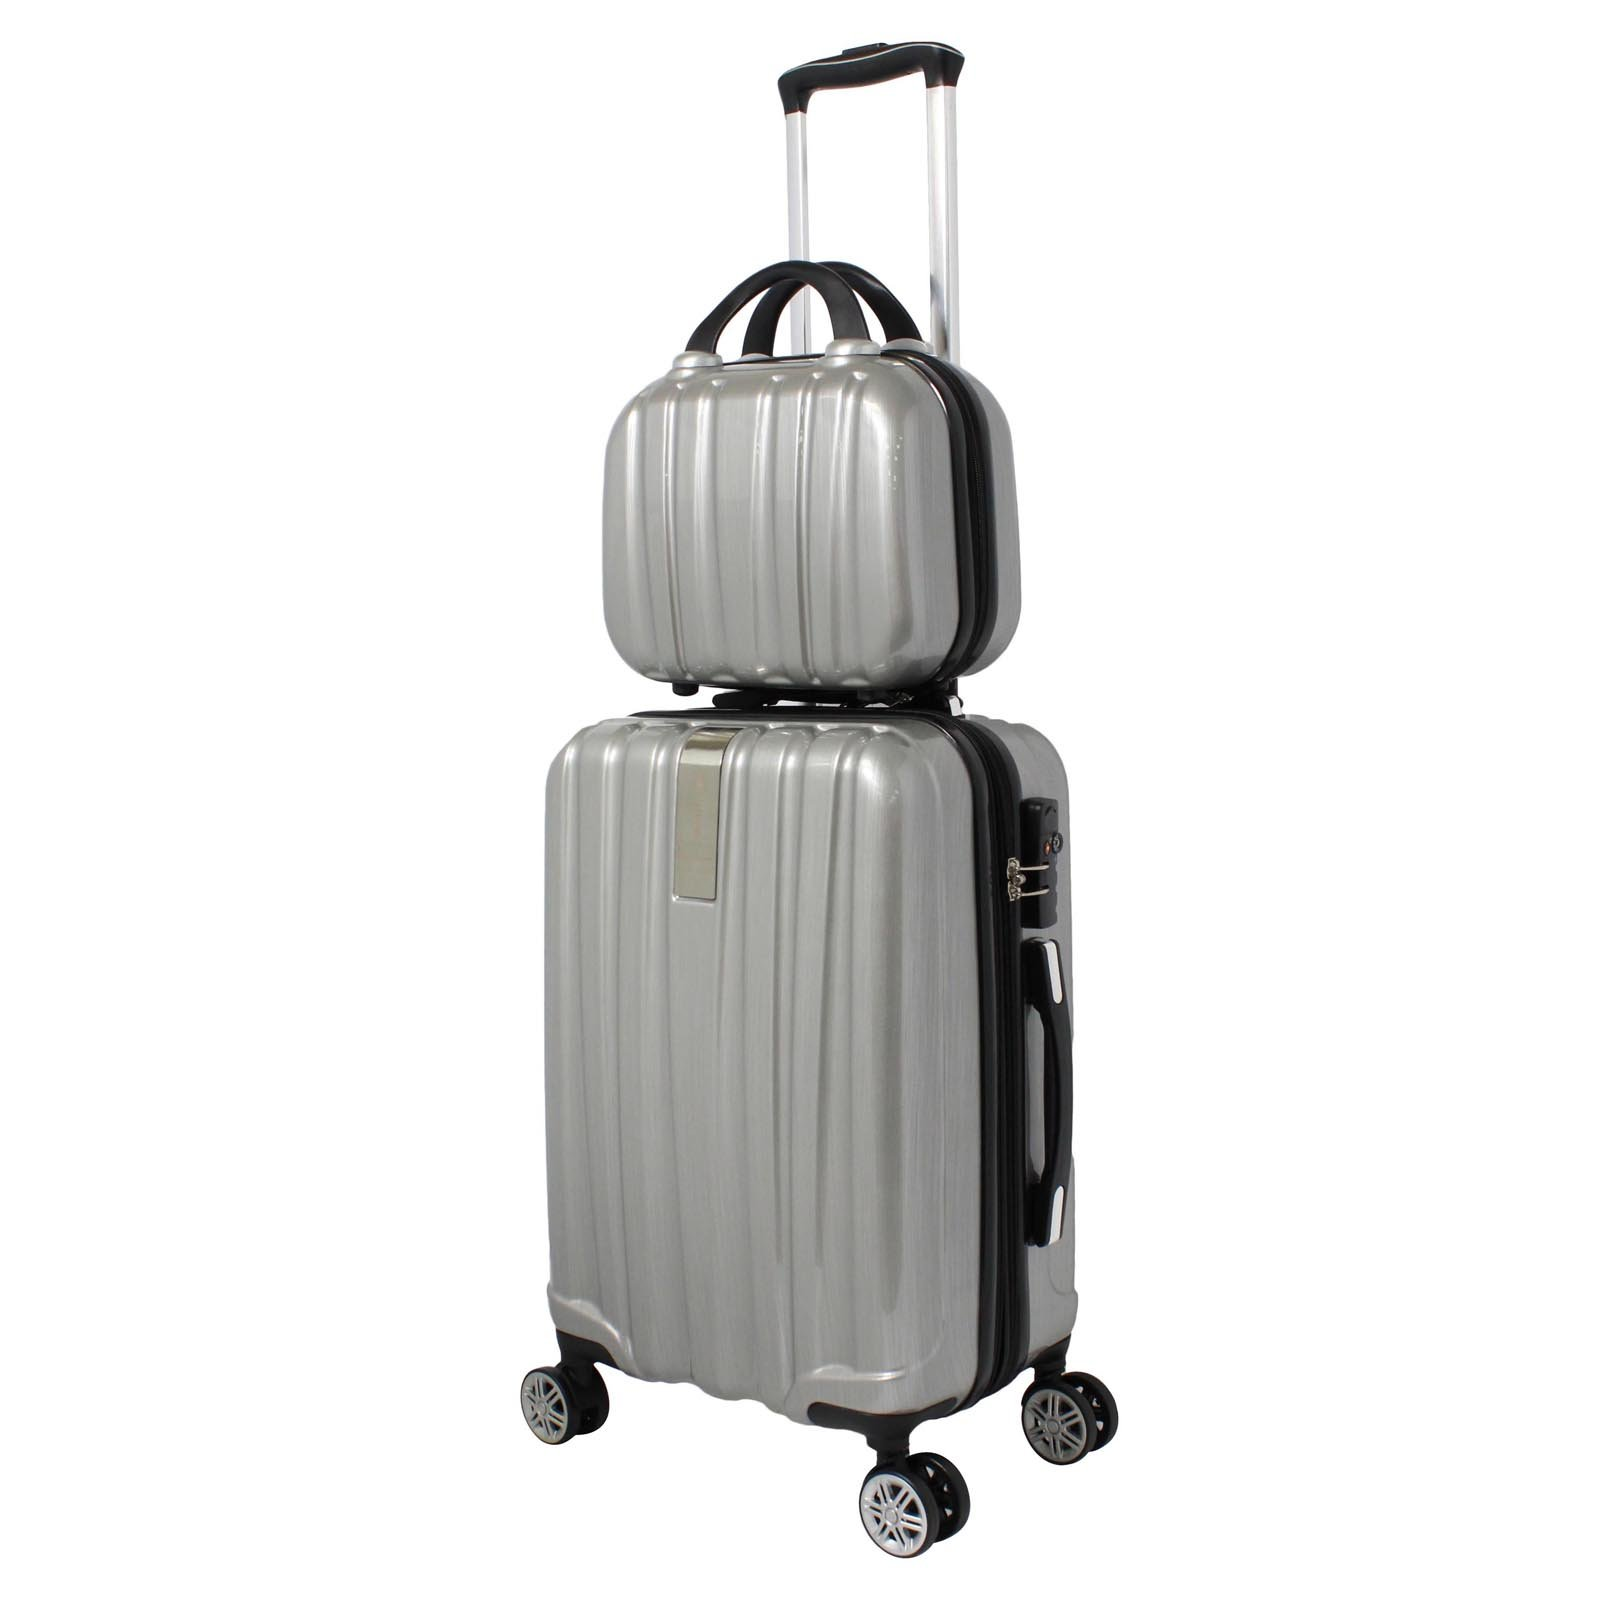 World Traveler Monaco 2-Piece Expandable Carry-on Spinner Luggage Set, Silver